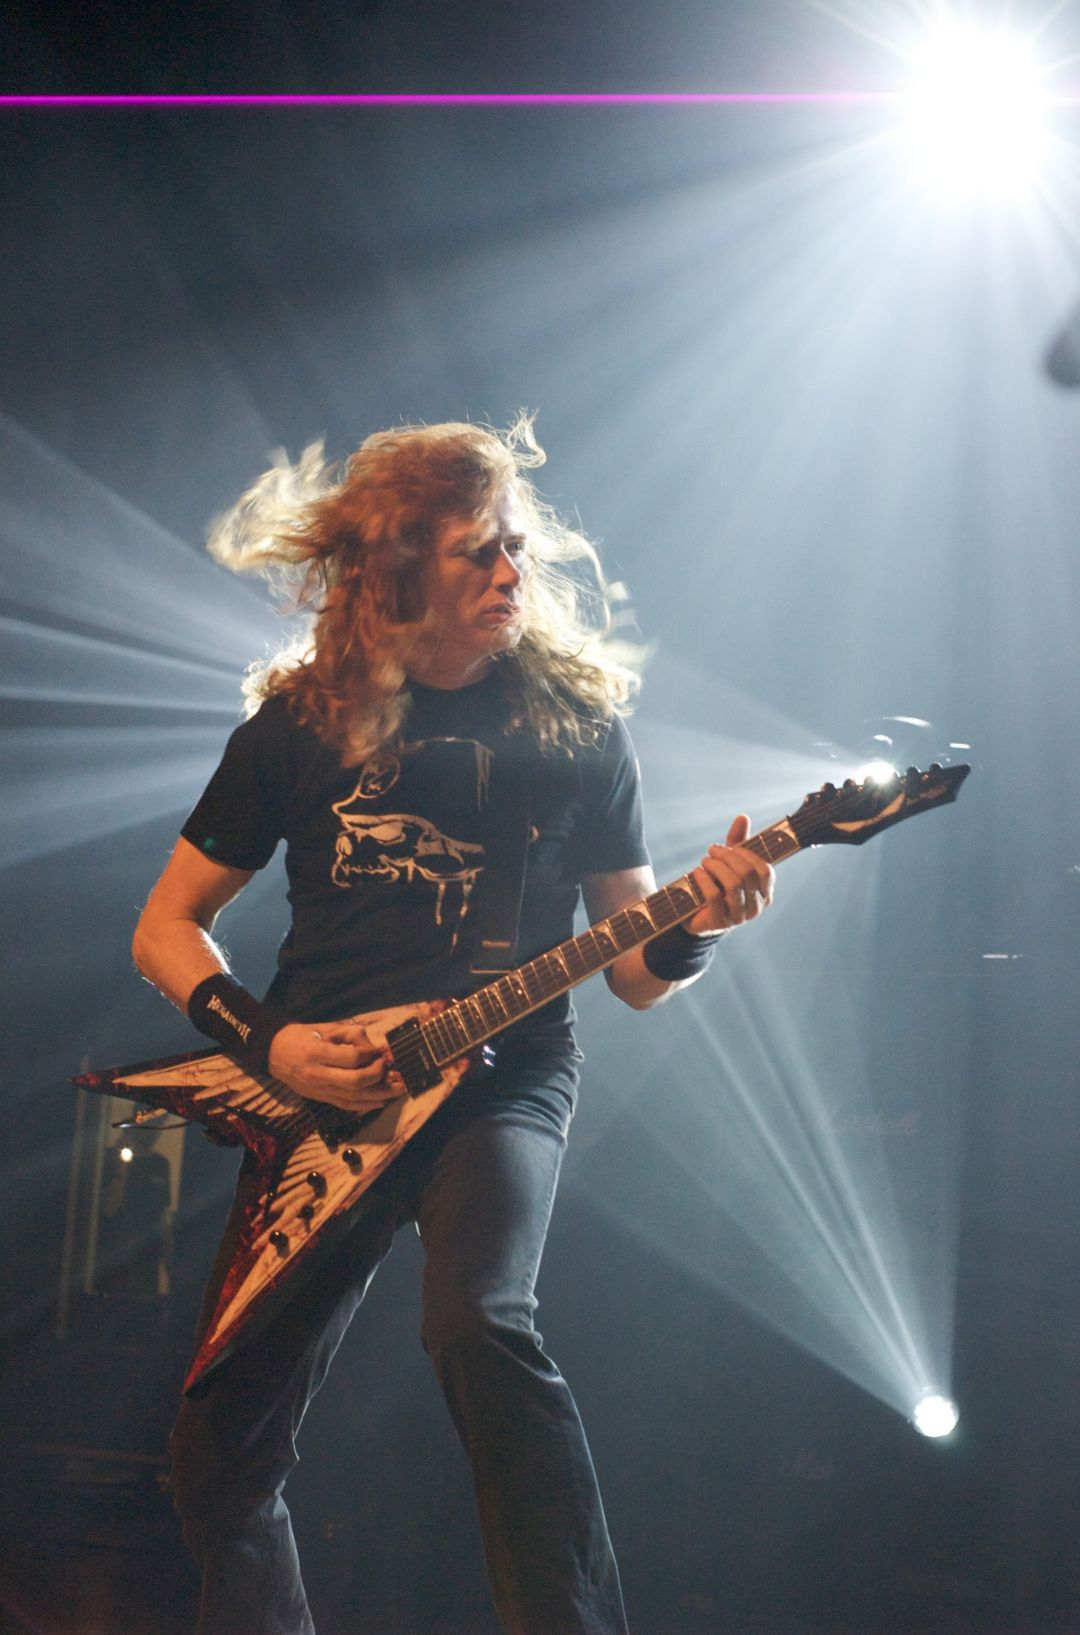 Dave mustaine - Android, iPhone, Desktop HD Backgrounds / Wallpapers (1080p, 4k) (458123) - Celebrities